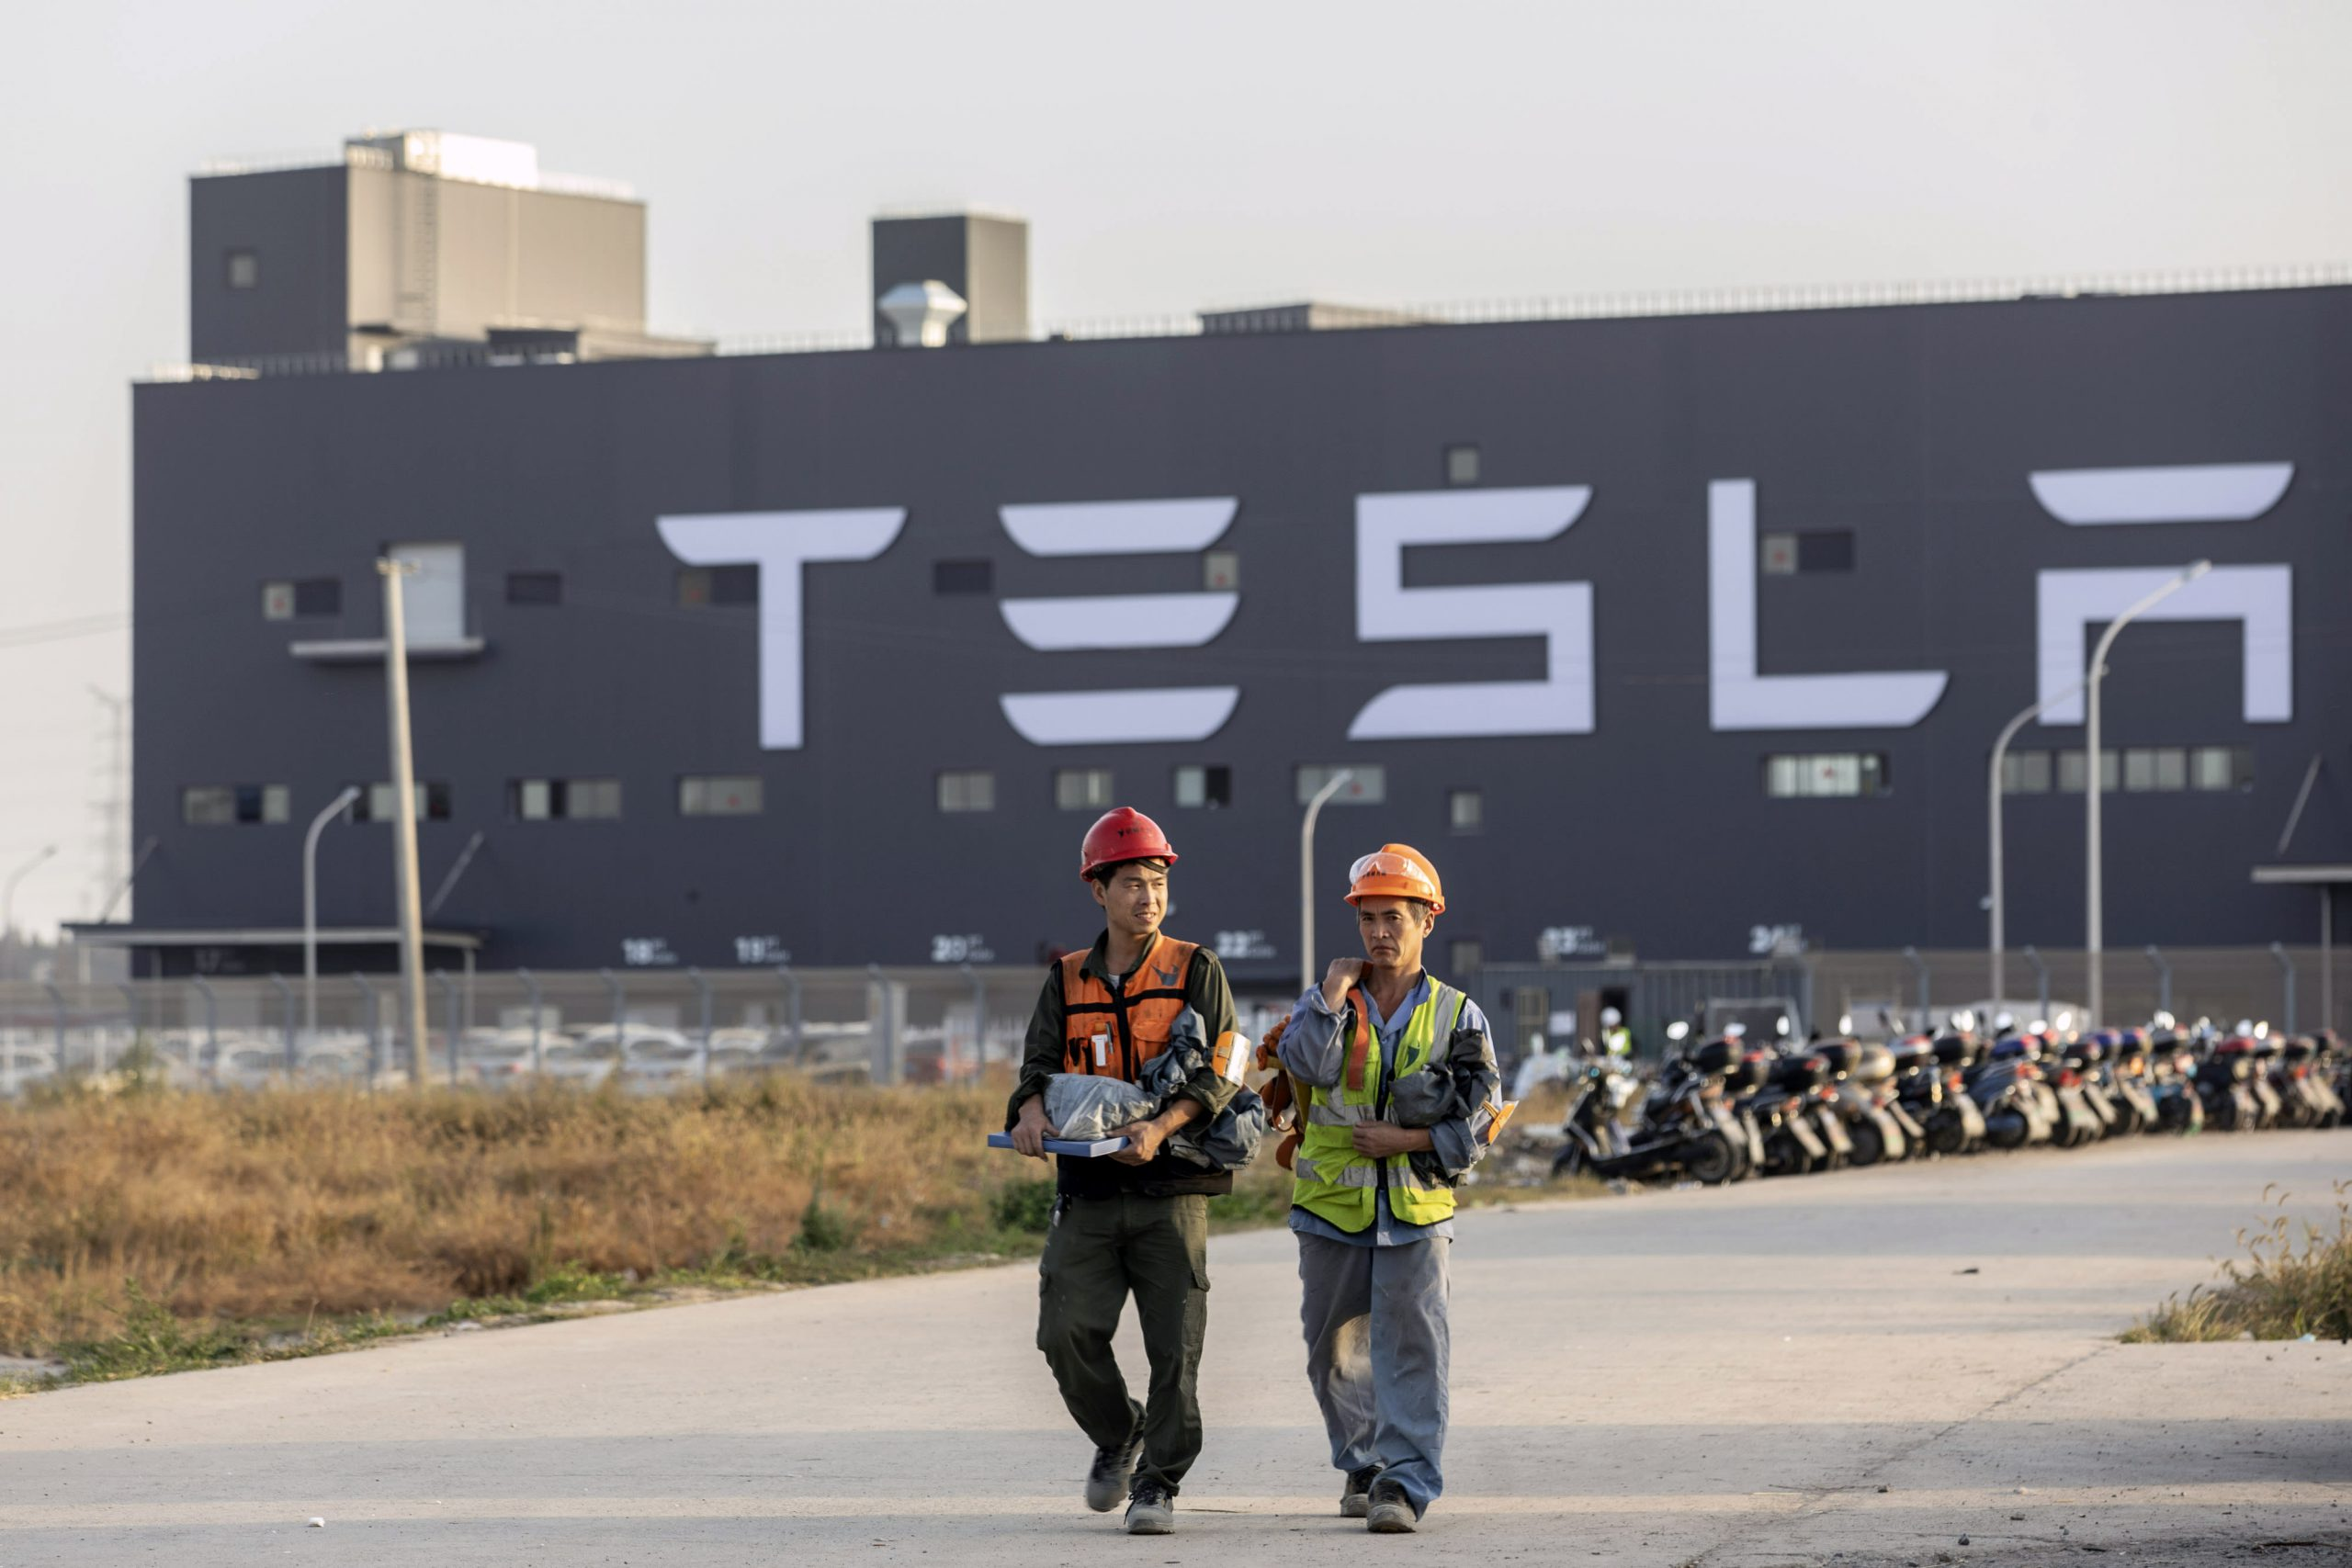 Stocks making the biggest moves midday: Tesla, Uber, Target, Kohl's and more